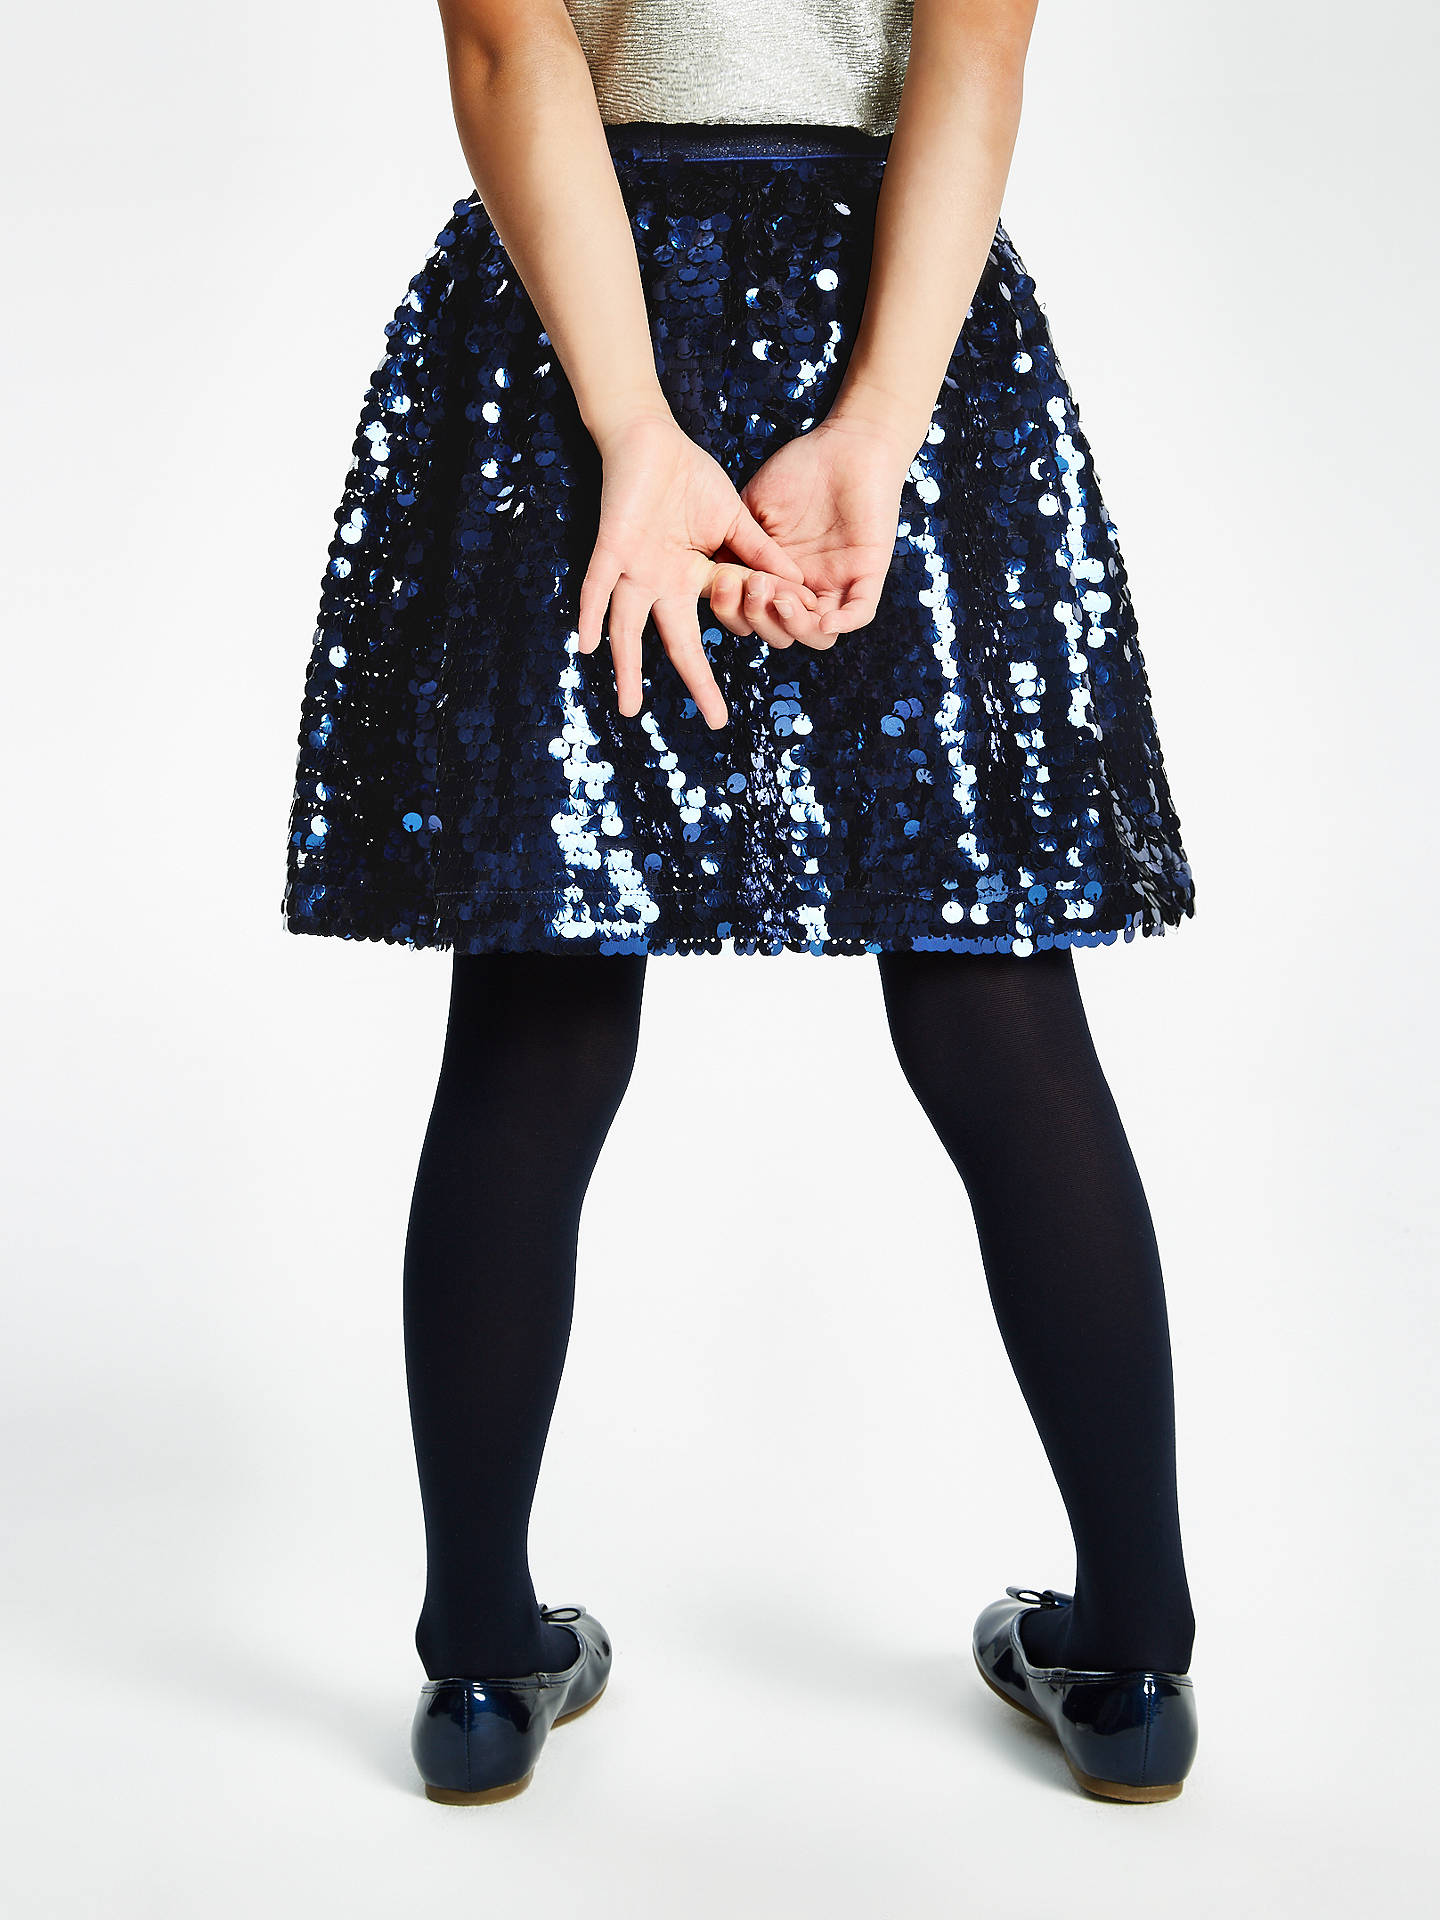 Buy John Lewis & Partners Girls' All Over Sequin Skirt, Navy, 10 years Online at johnlewis.com